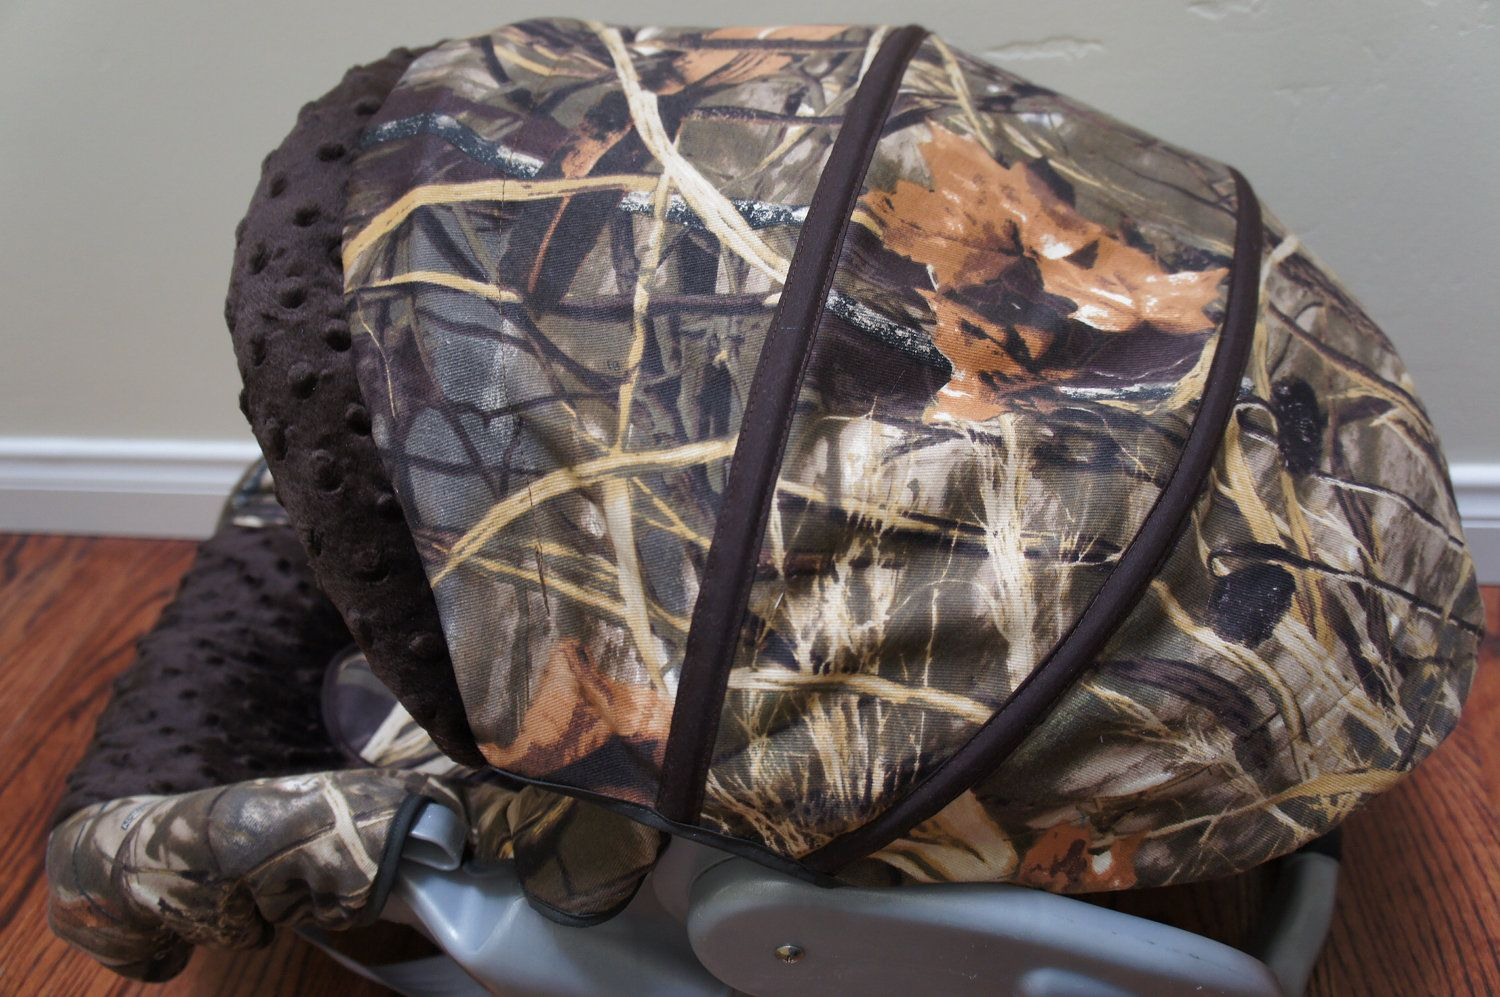 Graco Snugride Infant Replacement Car Seat Cover Max 4HD Camo Brown Minky Dots 7999 Via Etsy LOVE THIS